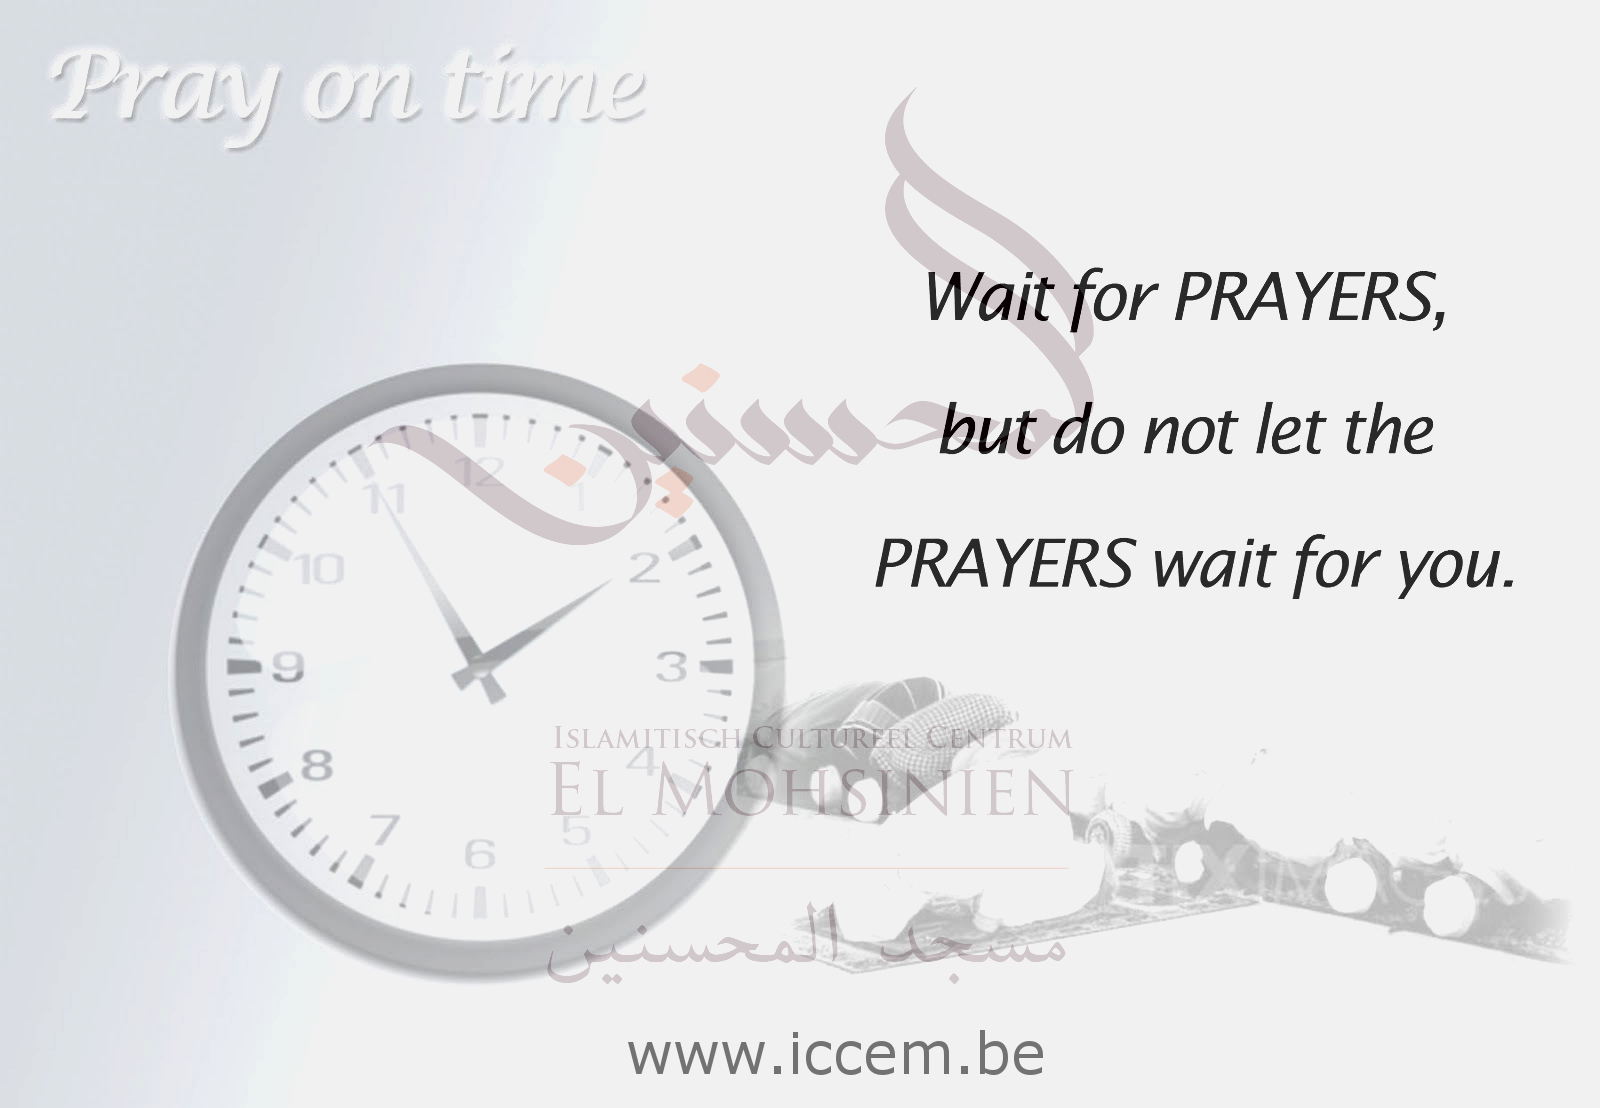 pray-on-time